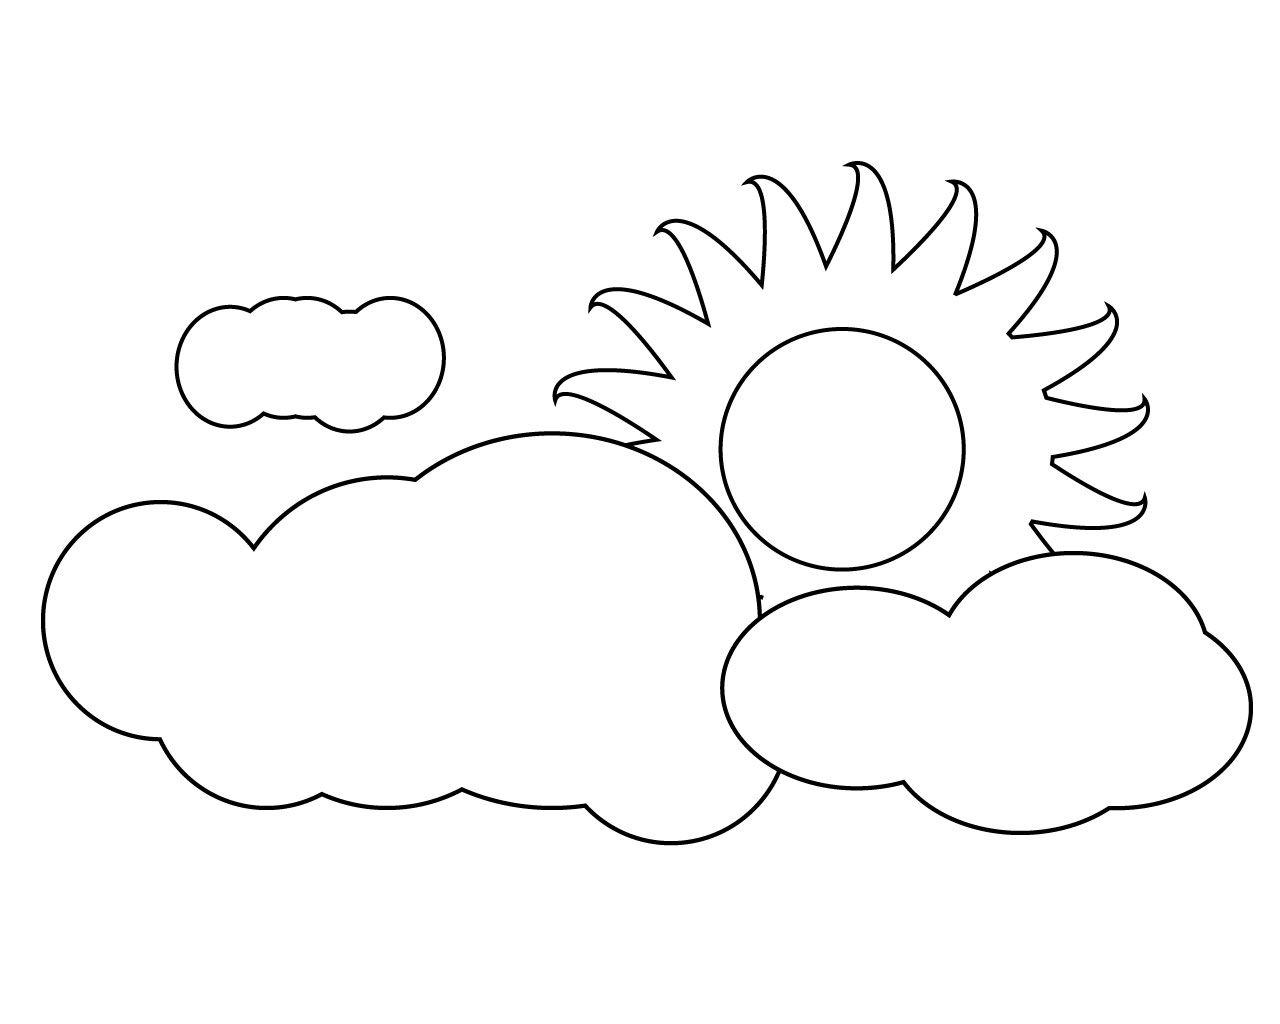 Sun Coloring Pages With Cloud Sun Coloring Pages Coloring Pages Summer Coloring Pages